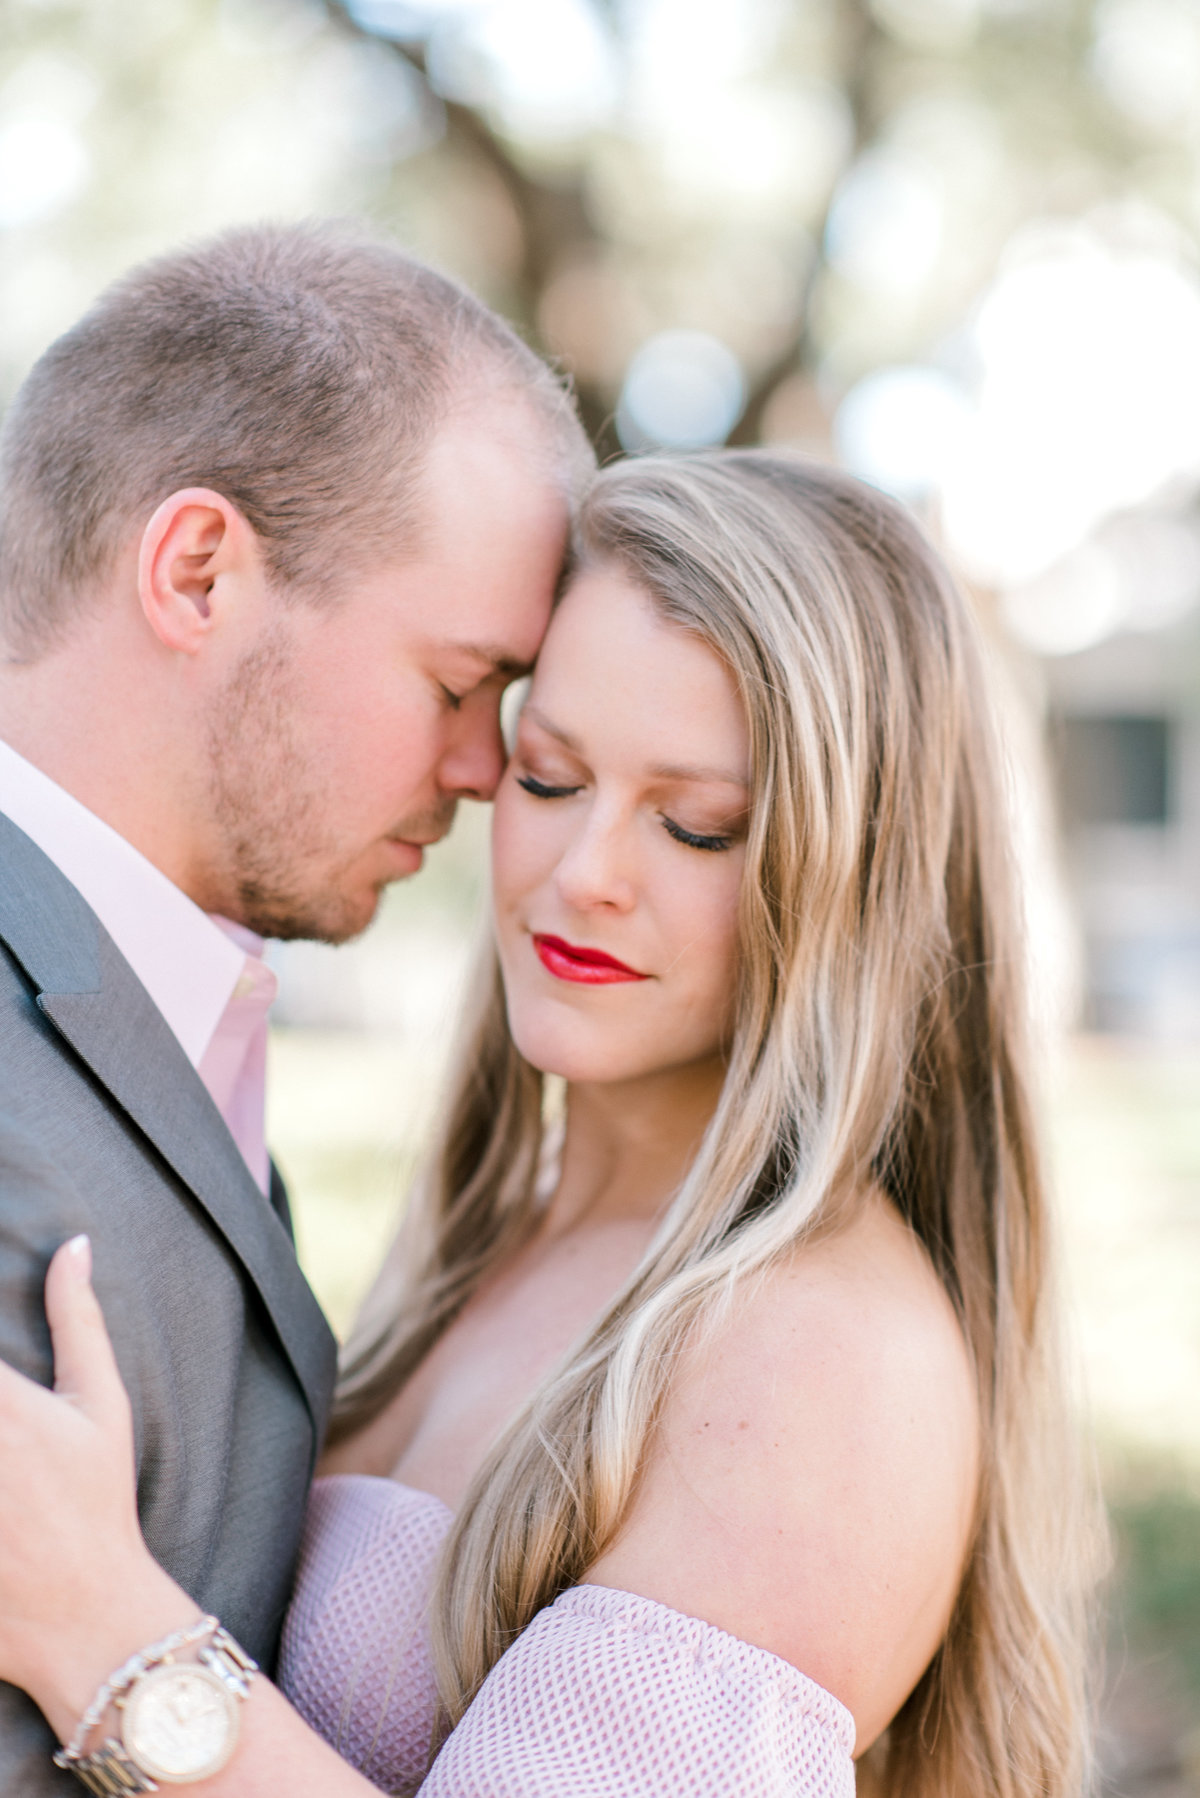 Tender moment between couple during engagement session